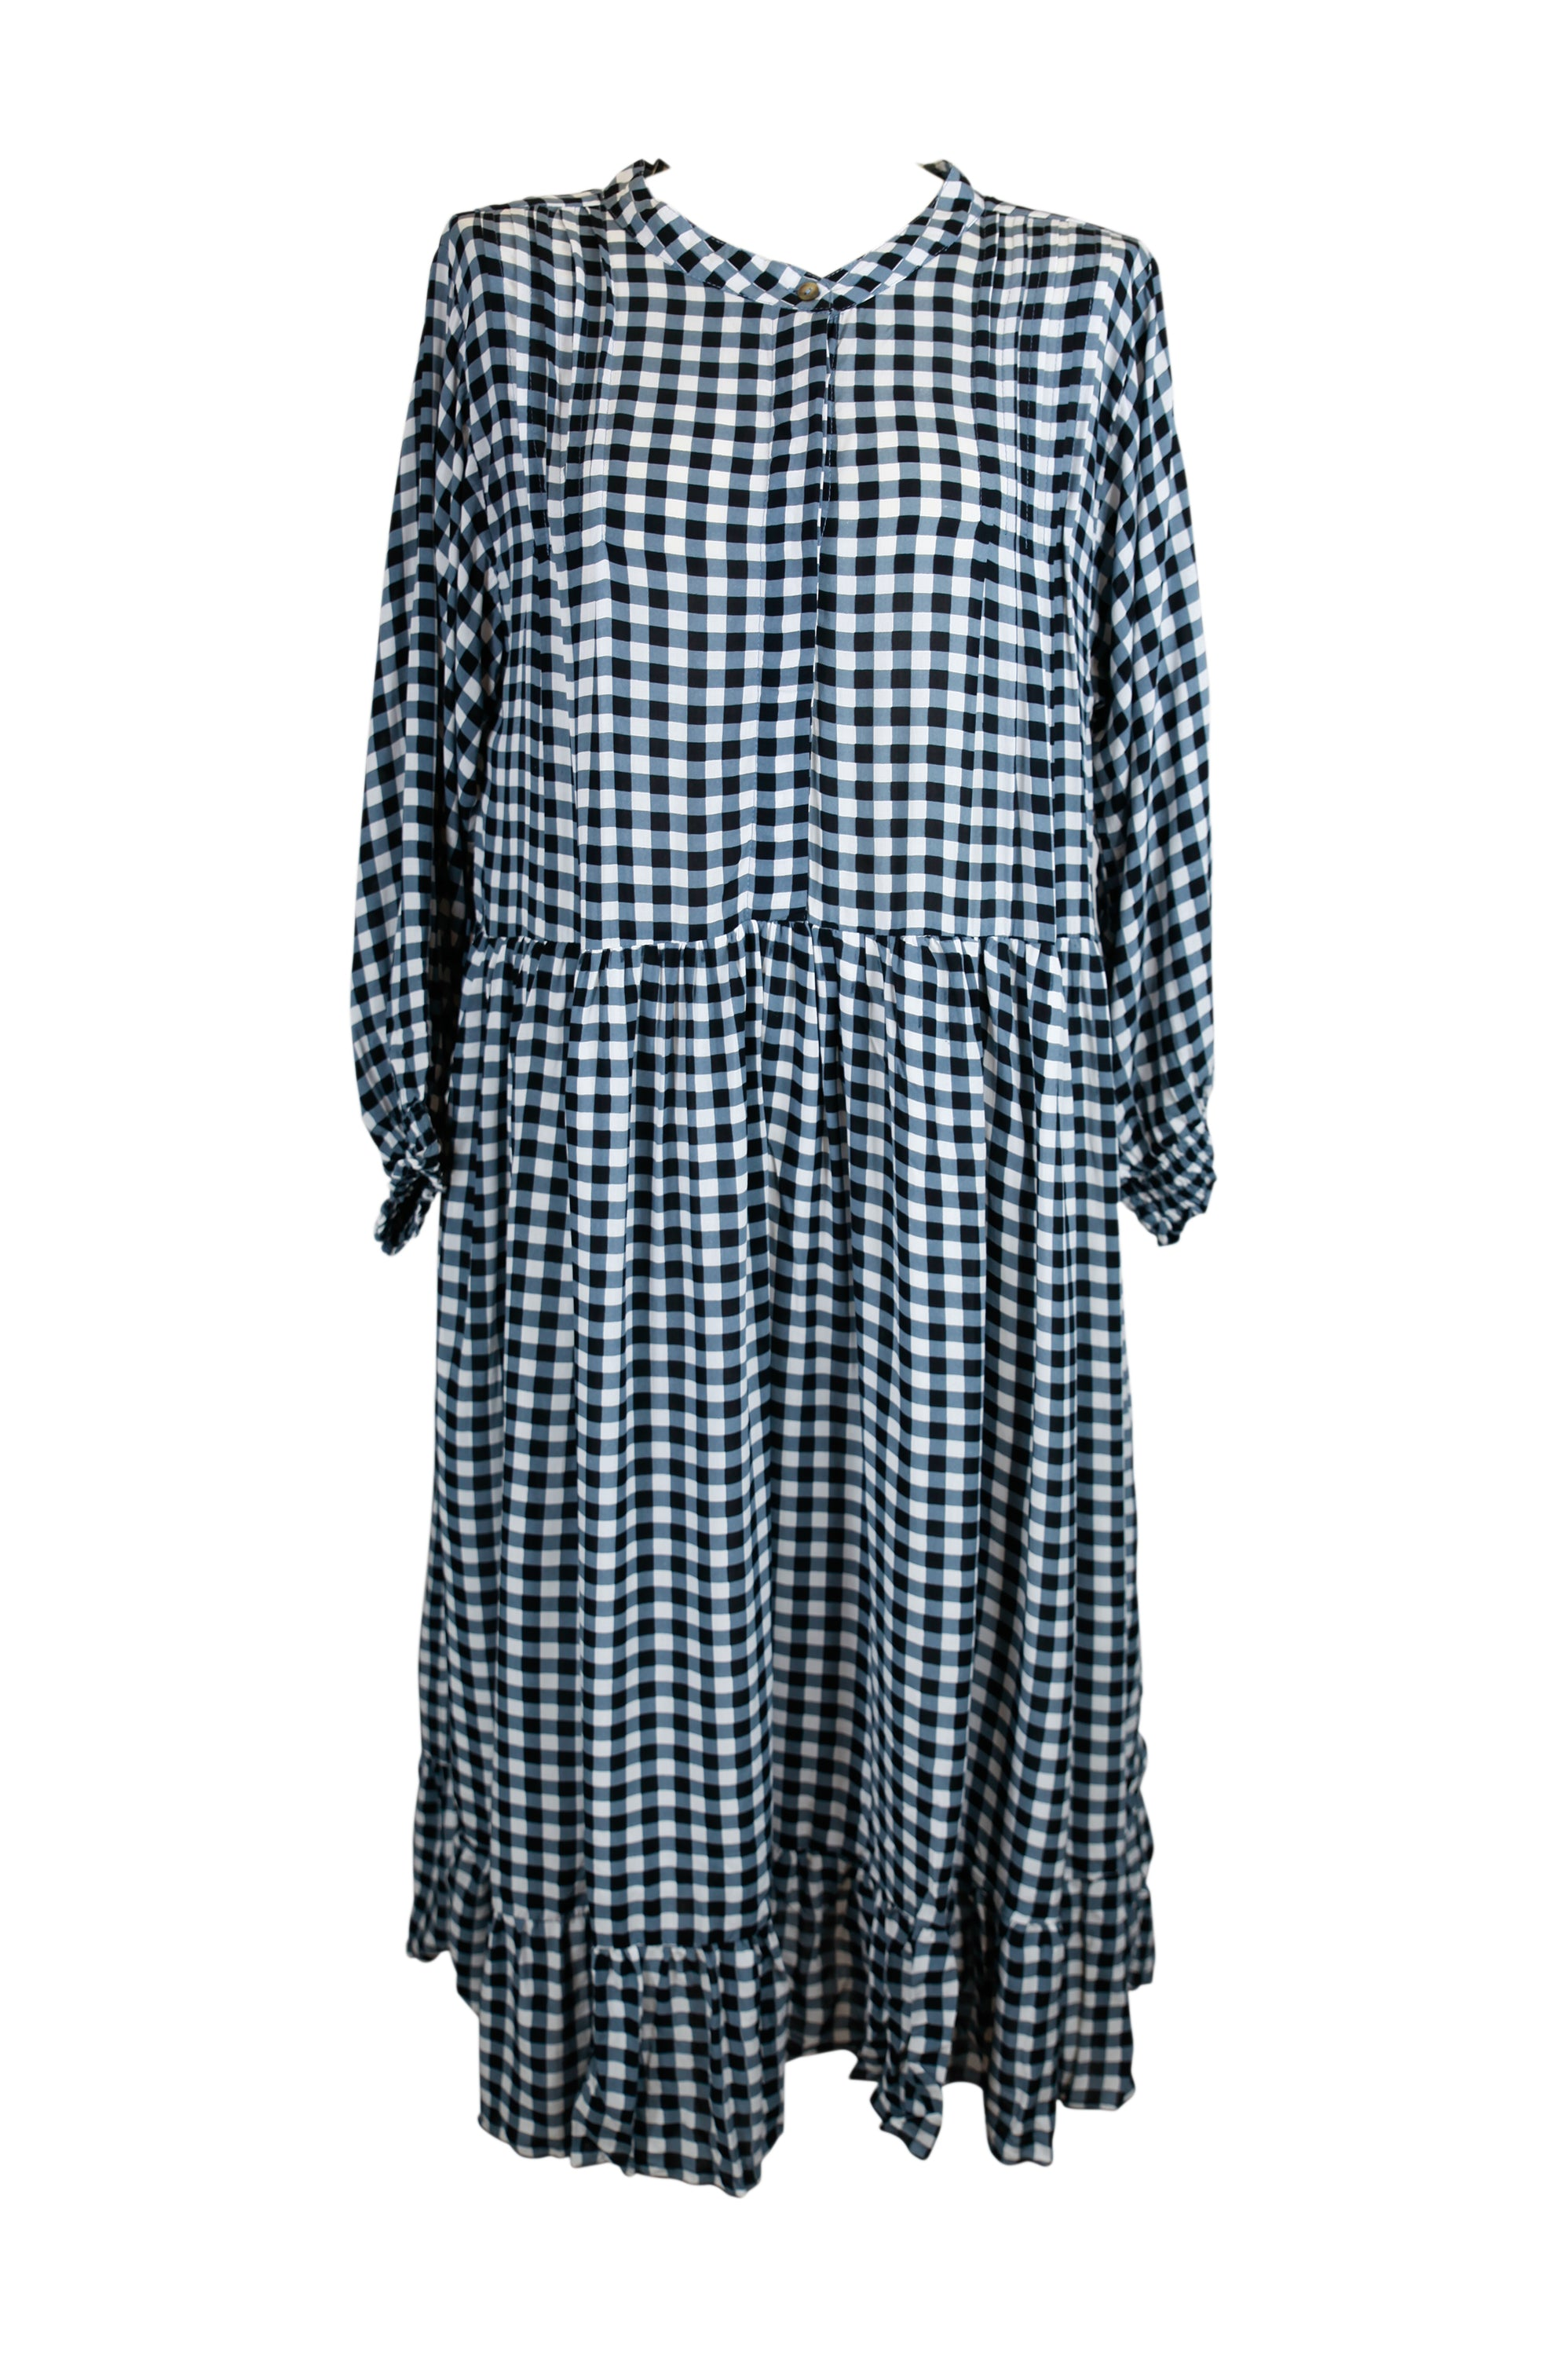 Valentina Midi Dress  Moonlight Gingham **Pre-Order Item** - Saffron Road